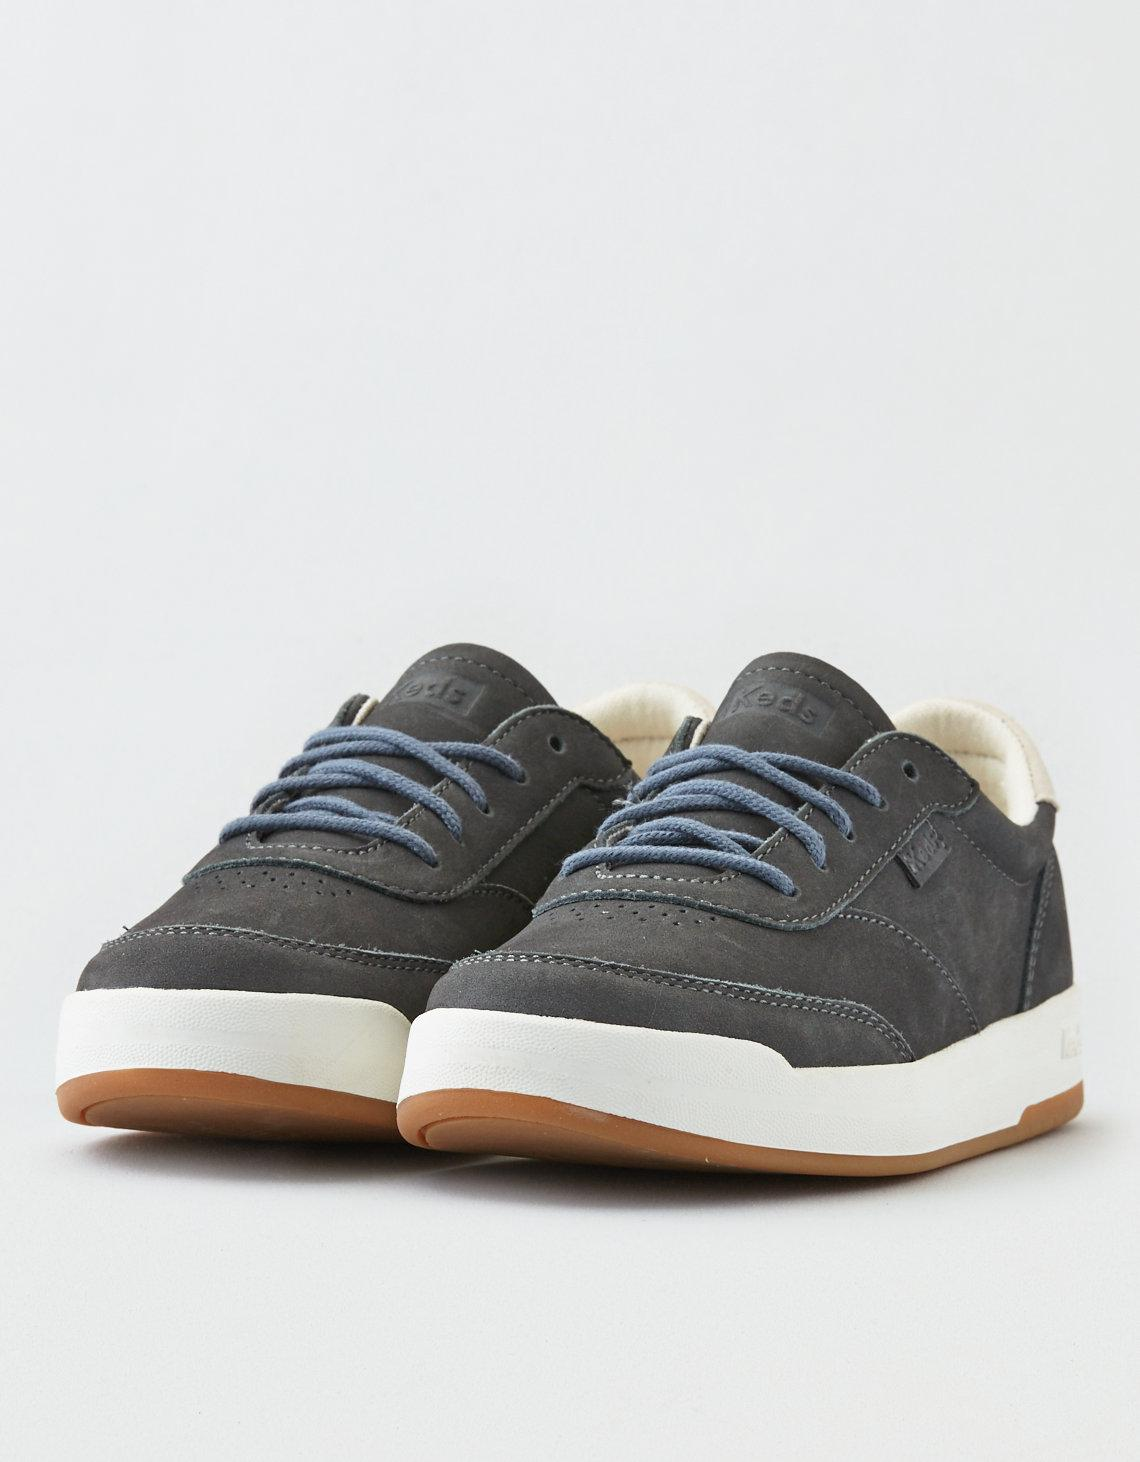 c263b8a2532 Lyst - American Eagle Keds Match Point Nubuck Sneaker in Gray